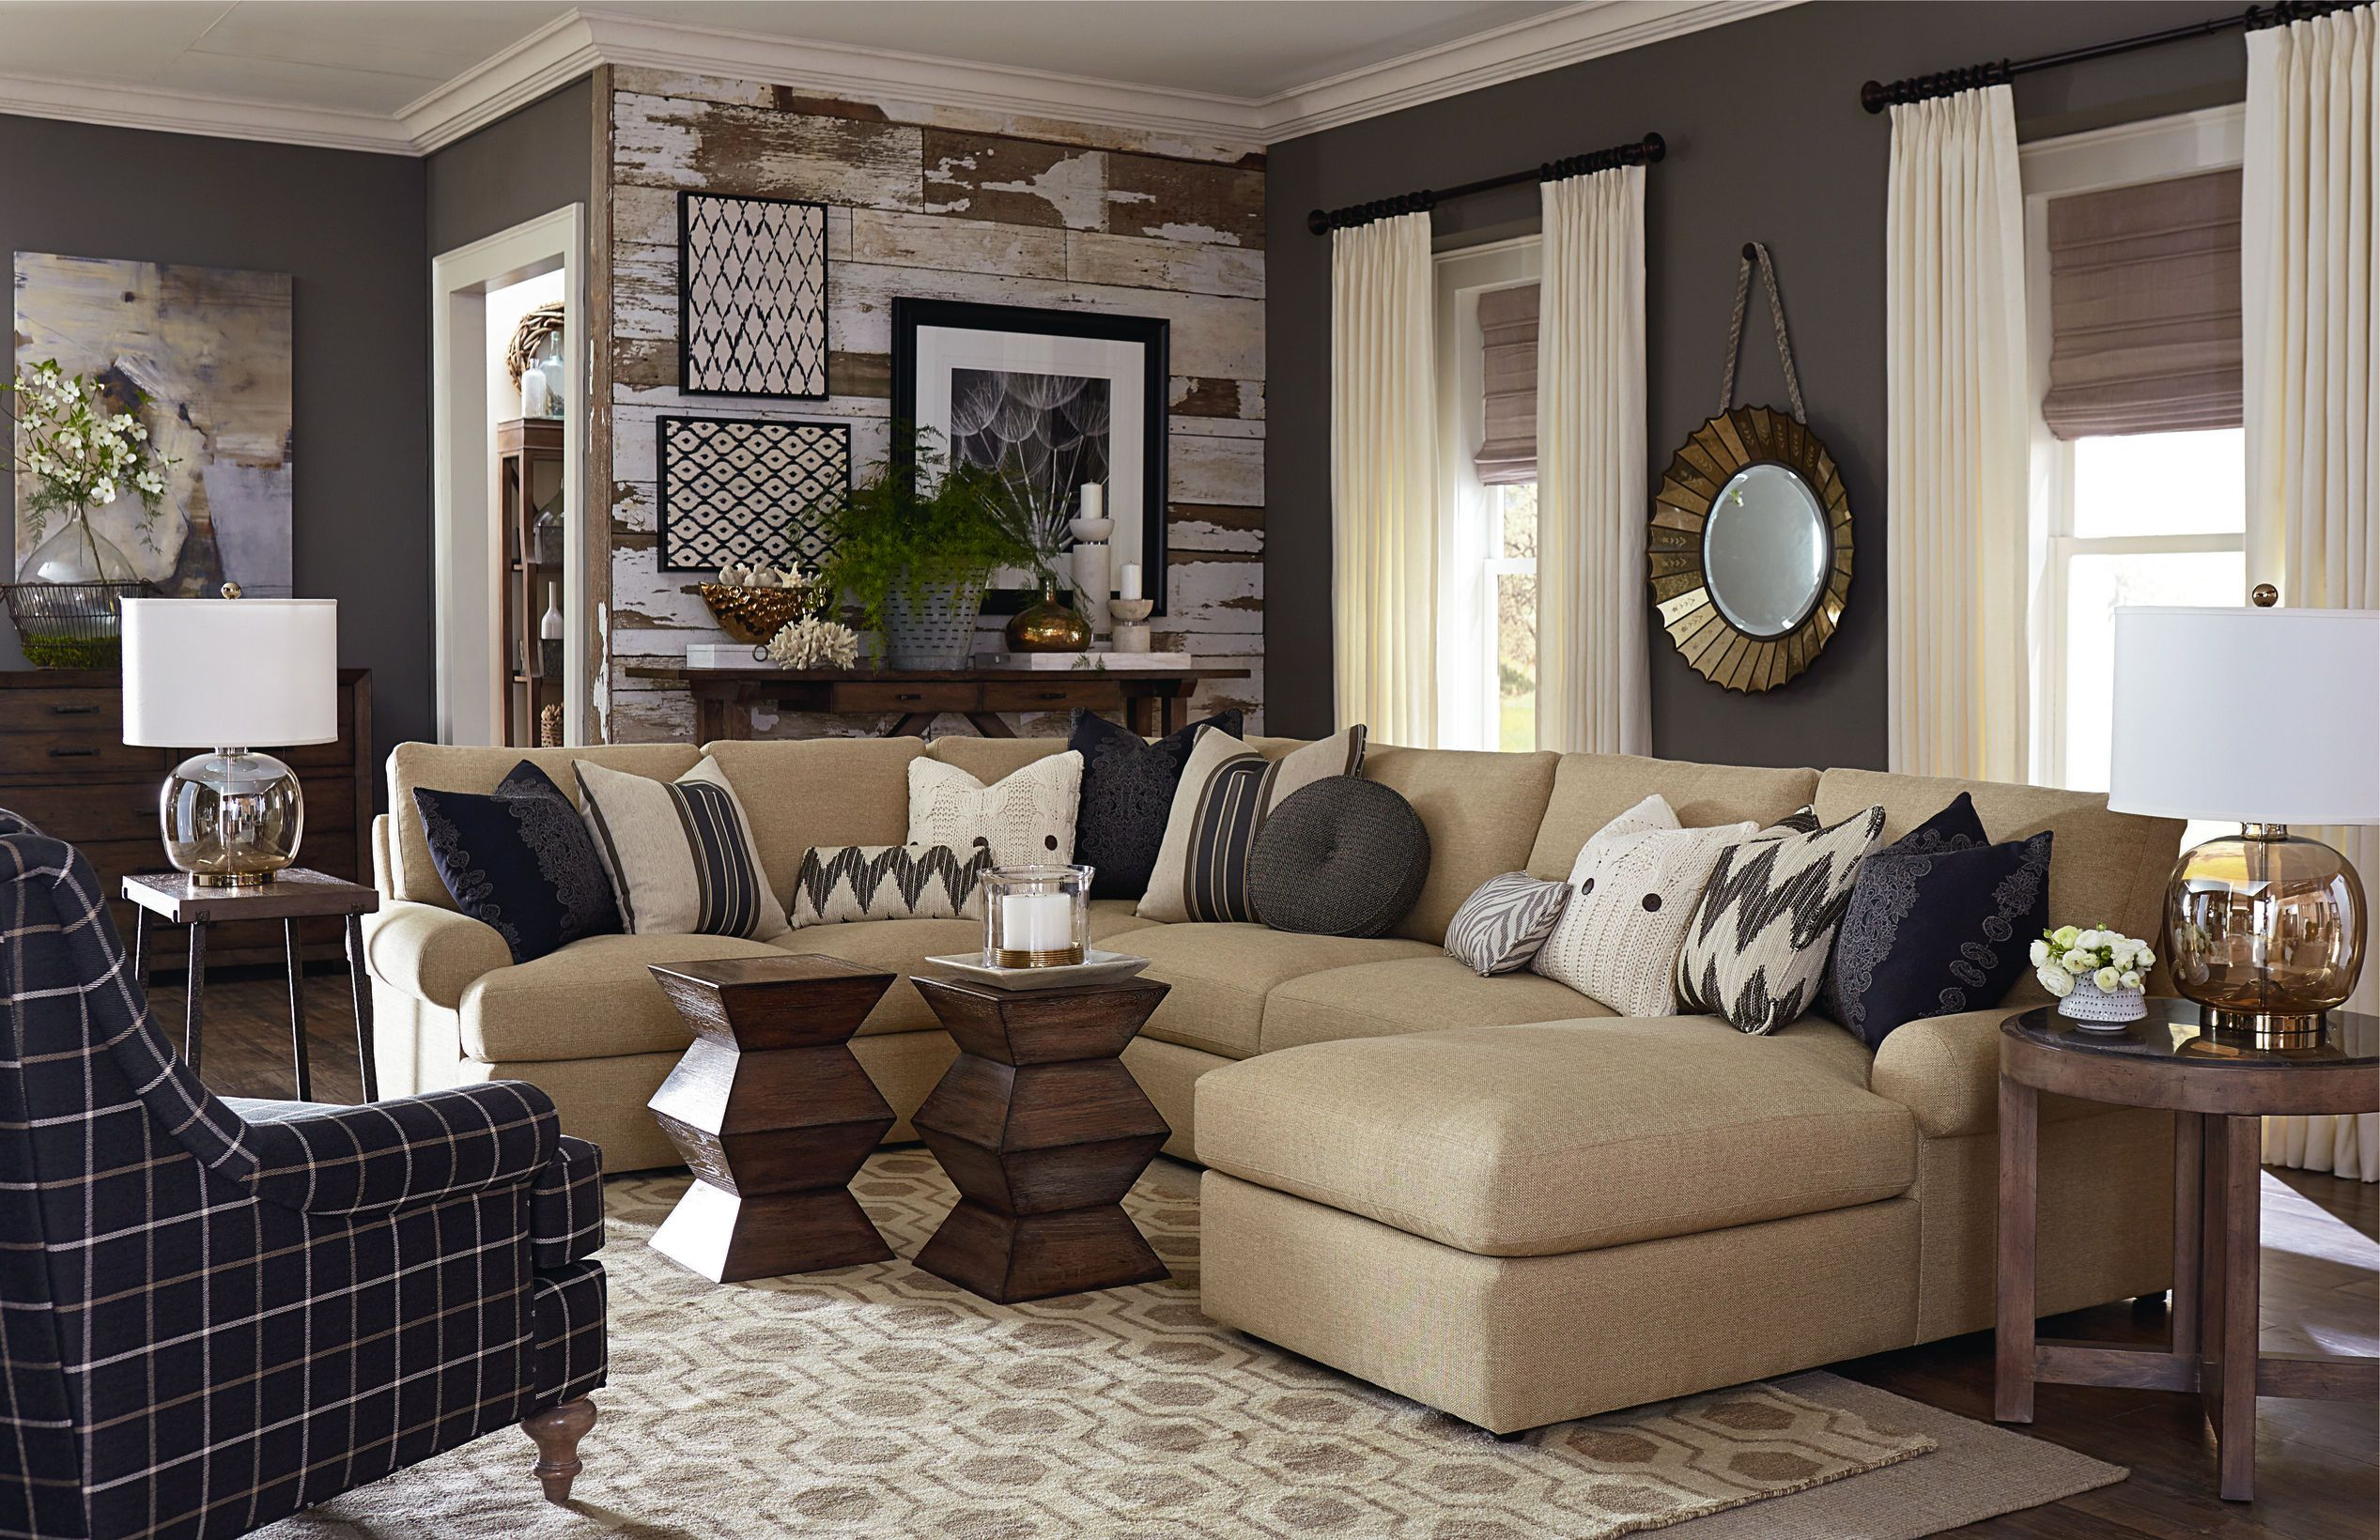 Angus accent arm chair brown buy seating living room store - What Do You Think About This Living Room From Bassett It Combines Chevron Stripes